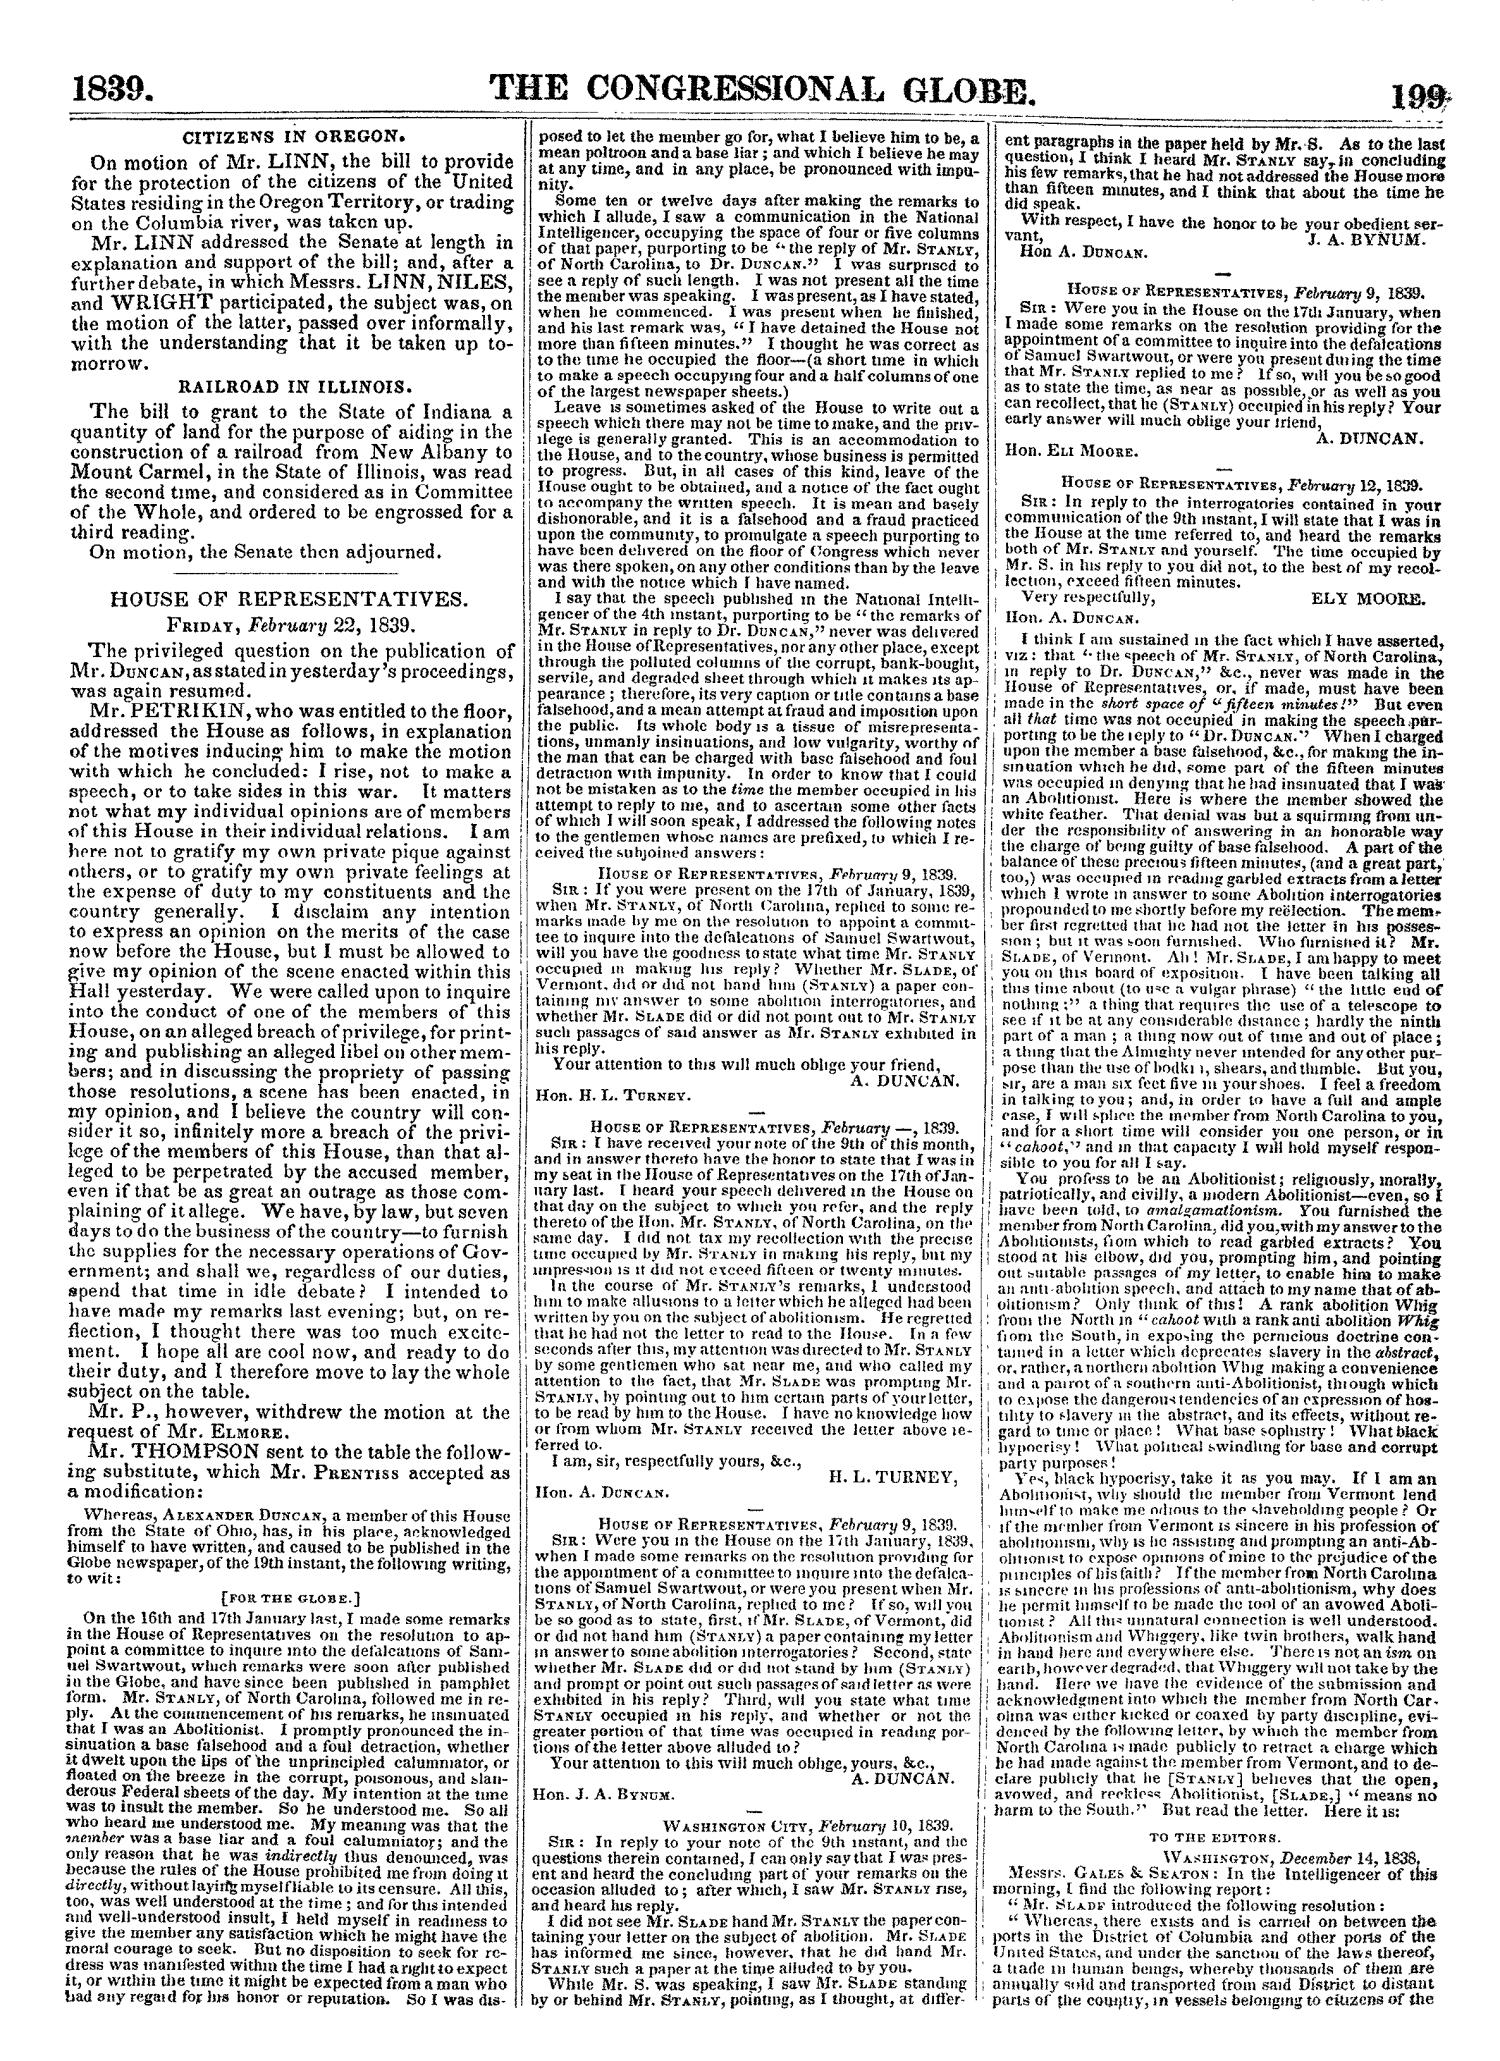 The Congressional Globe, Volume 7: Twenty-Fifth Congress, Third Session                                                                                                      [Sequence #]: 218 of 687